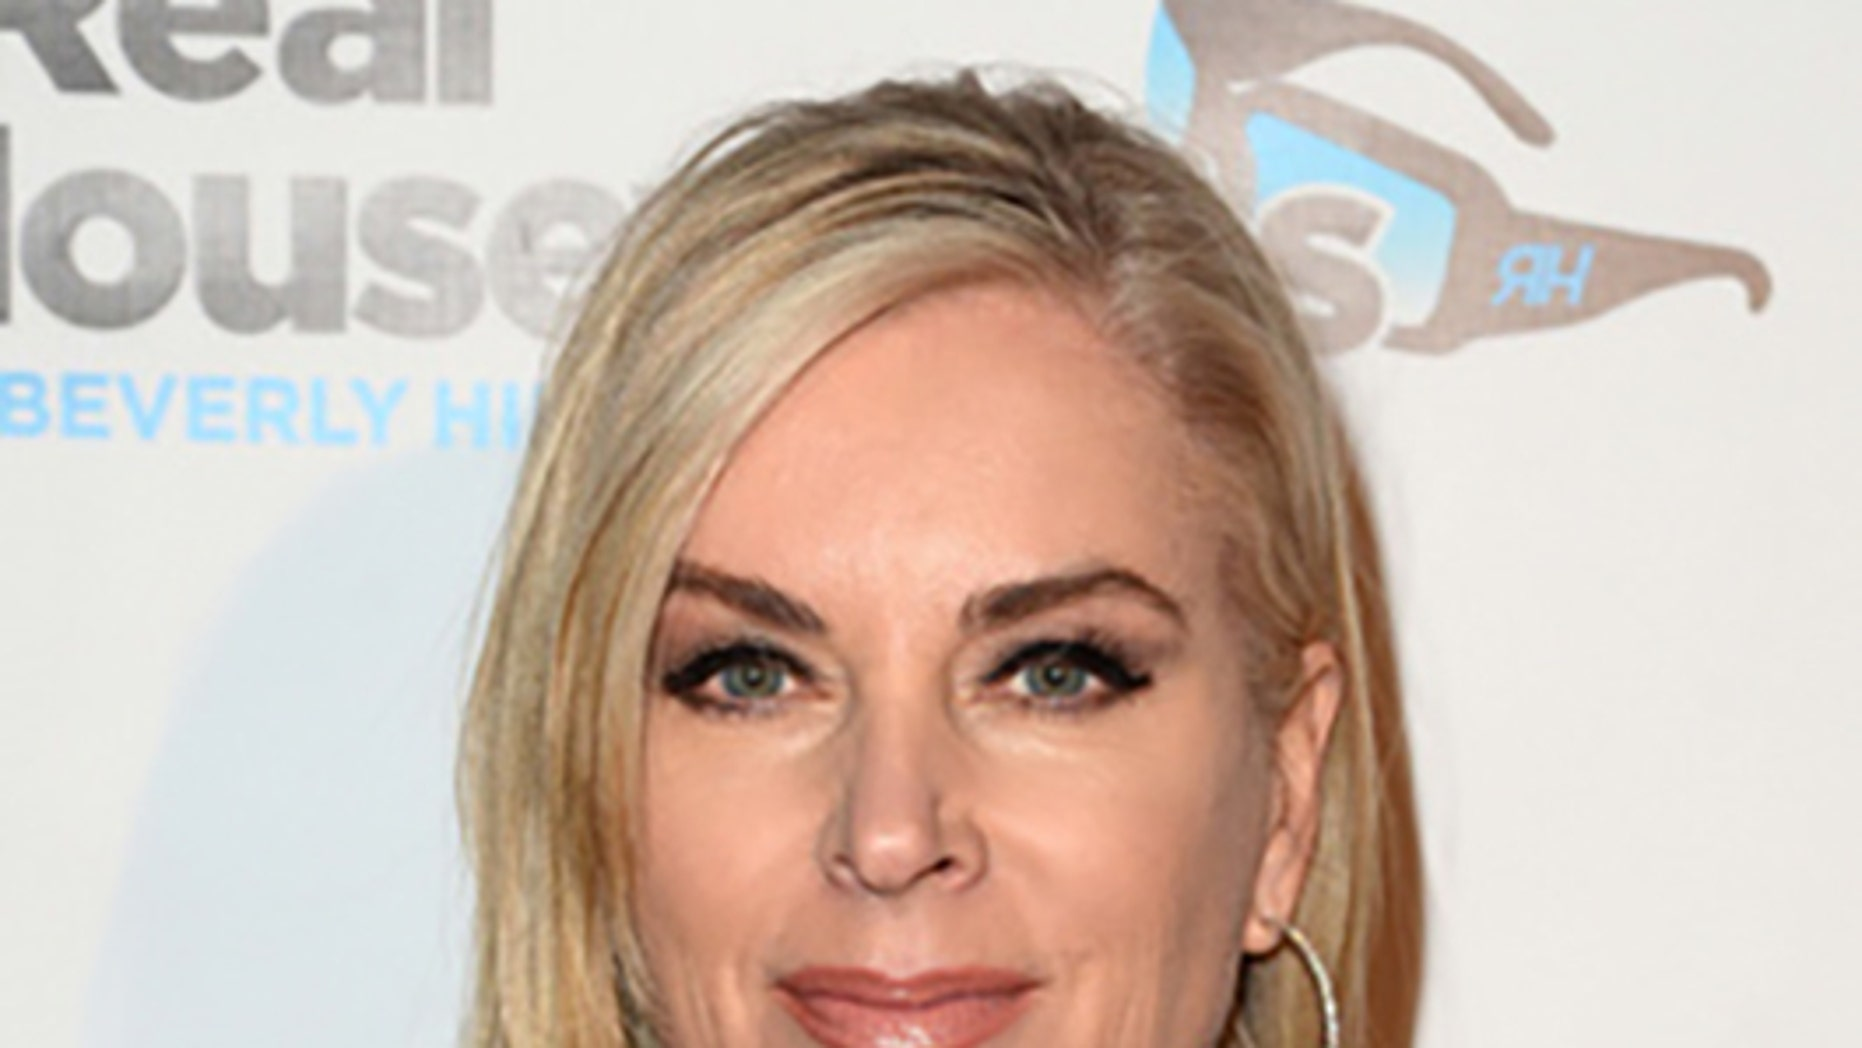 """The Young and the Restless"" actress Eileen Davidson is leaving daytime drama once more."